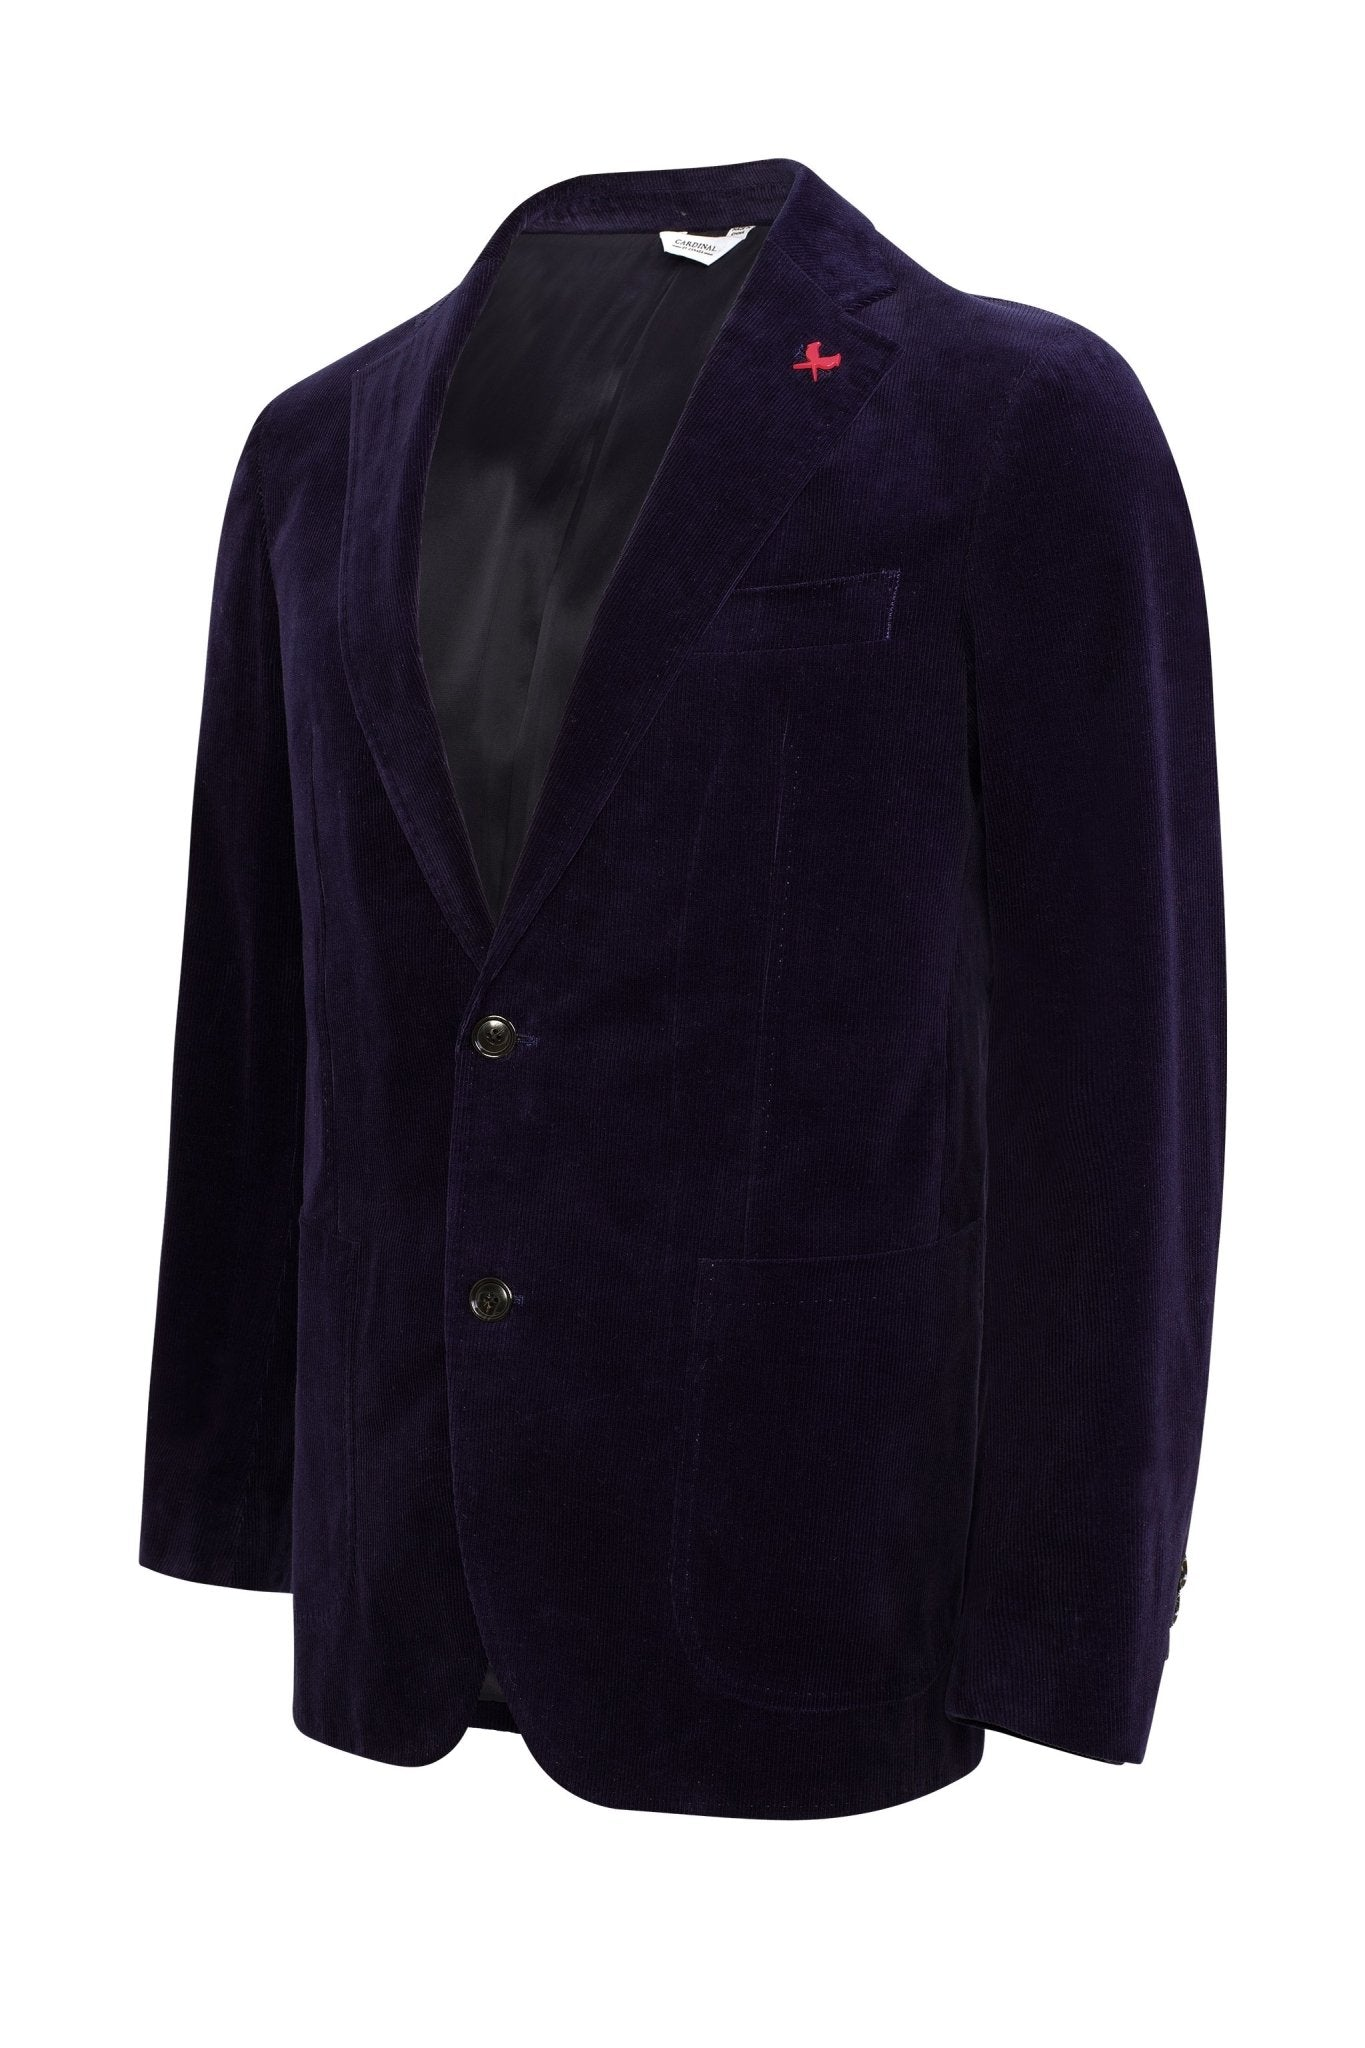 Blue Anderson Contemporary Fit Cord Sport Coat - Cardinal of Canada-US